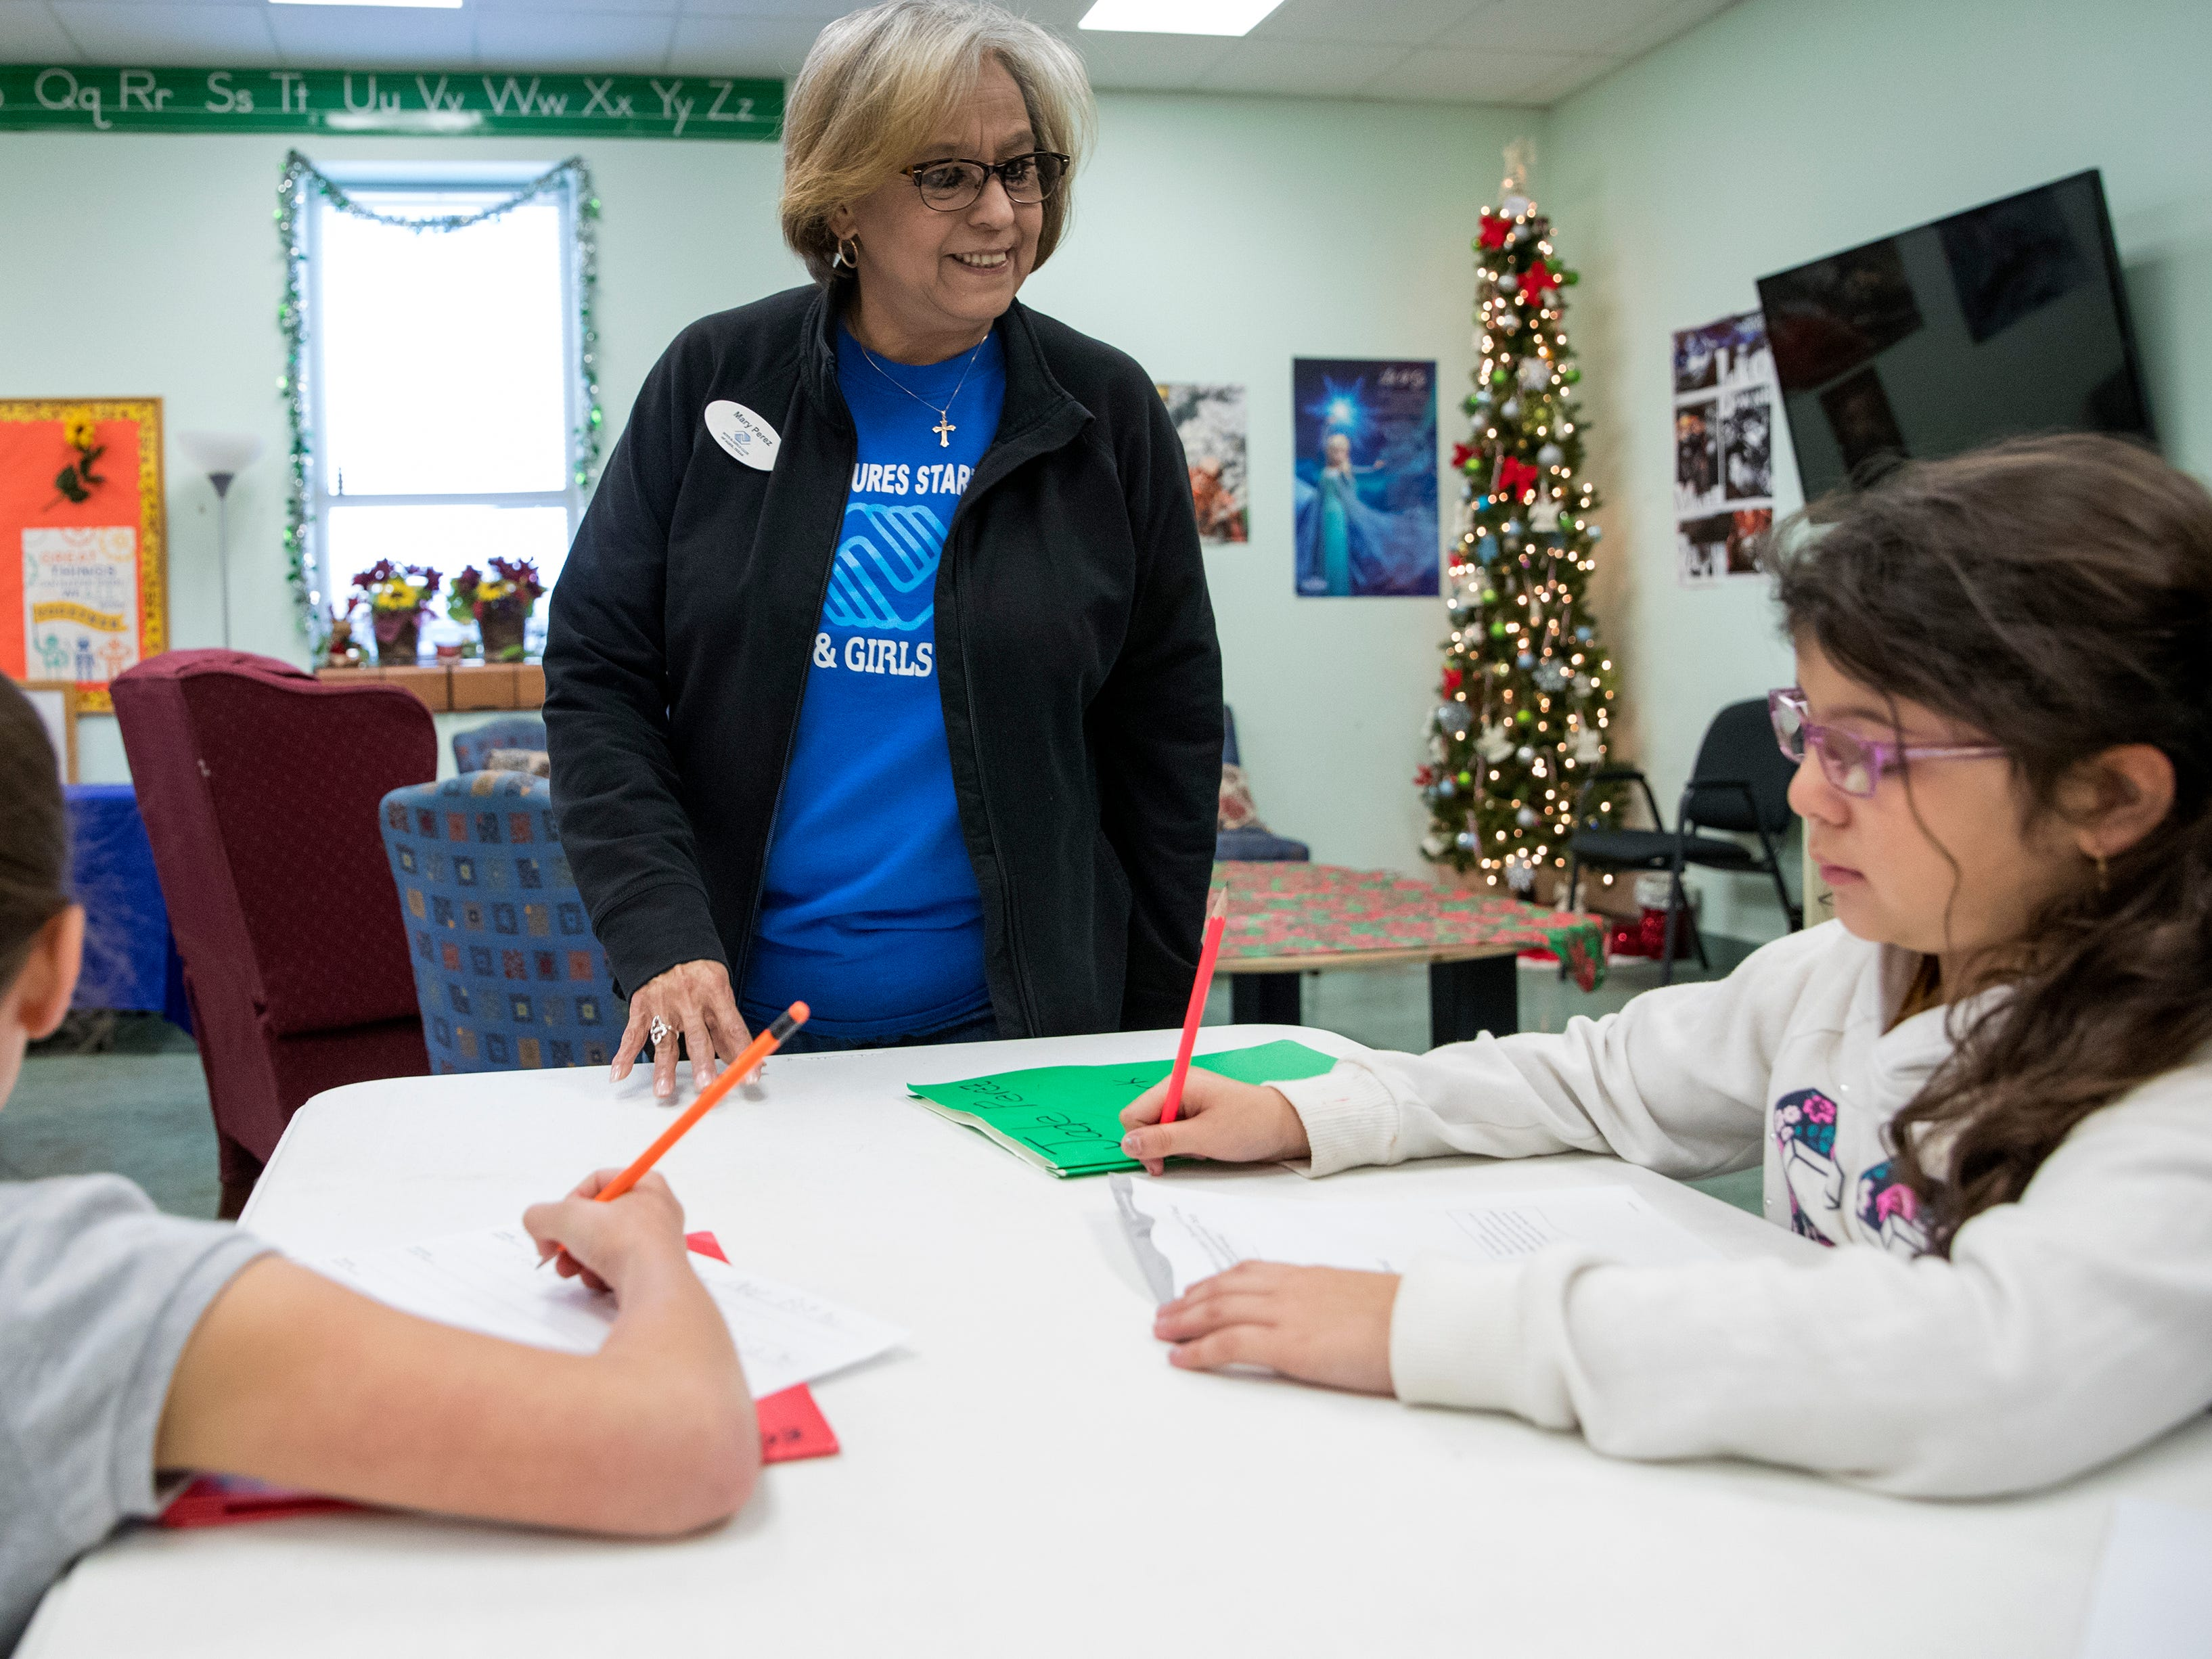 Aliyah Leija (left), 6, and Jada Perez (right), 6 get help with their homework from Mary Lopez, education programs lead at the Boys & Girls Club of Alice, on Tuesday, December 4, 2018. Programs at the club focus on education, life skills and recreation, such as art and games. They rely on donations to maintain and improve facilities. The Boys & Girls Club of Alice is one of seven agencies who participate in the Caller-Times Children's Christmas Appeal.